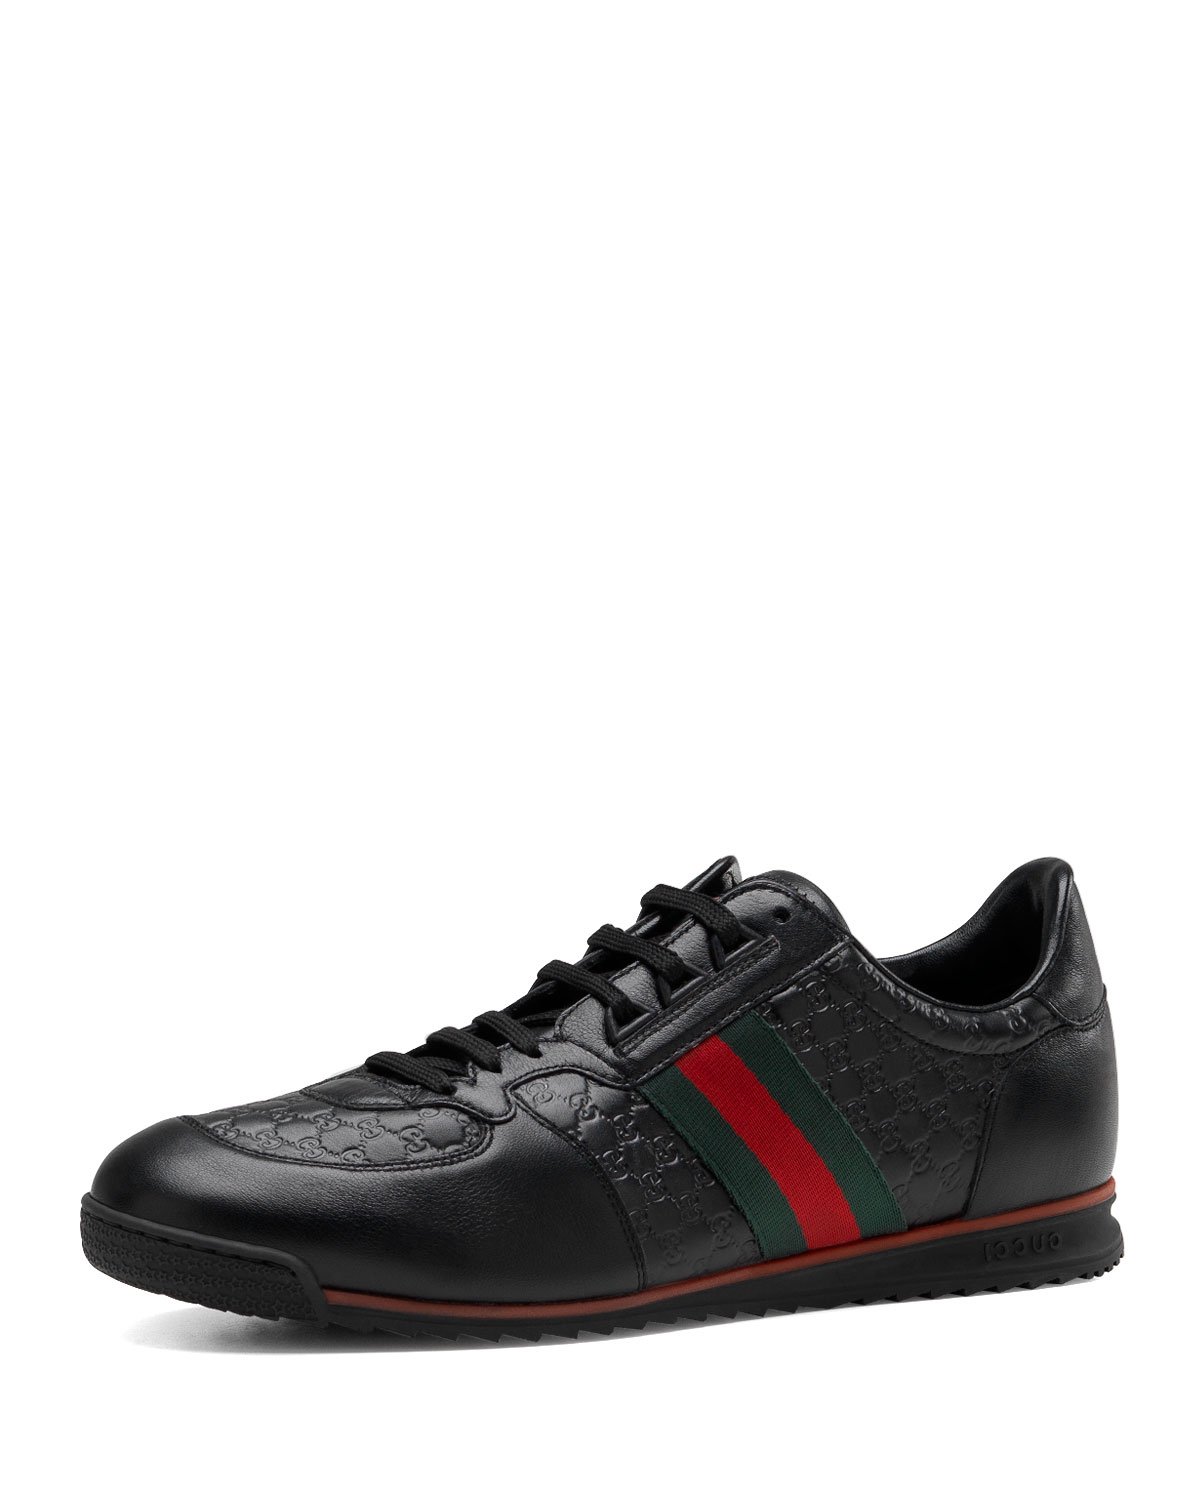 gucci sl73 lace up sneaker in black lyst. Black Bedroom Furniture Sets. Home Design Ideas